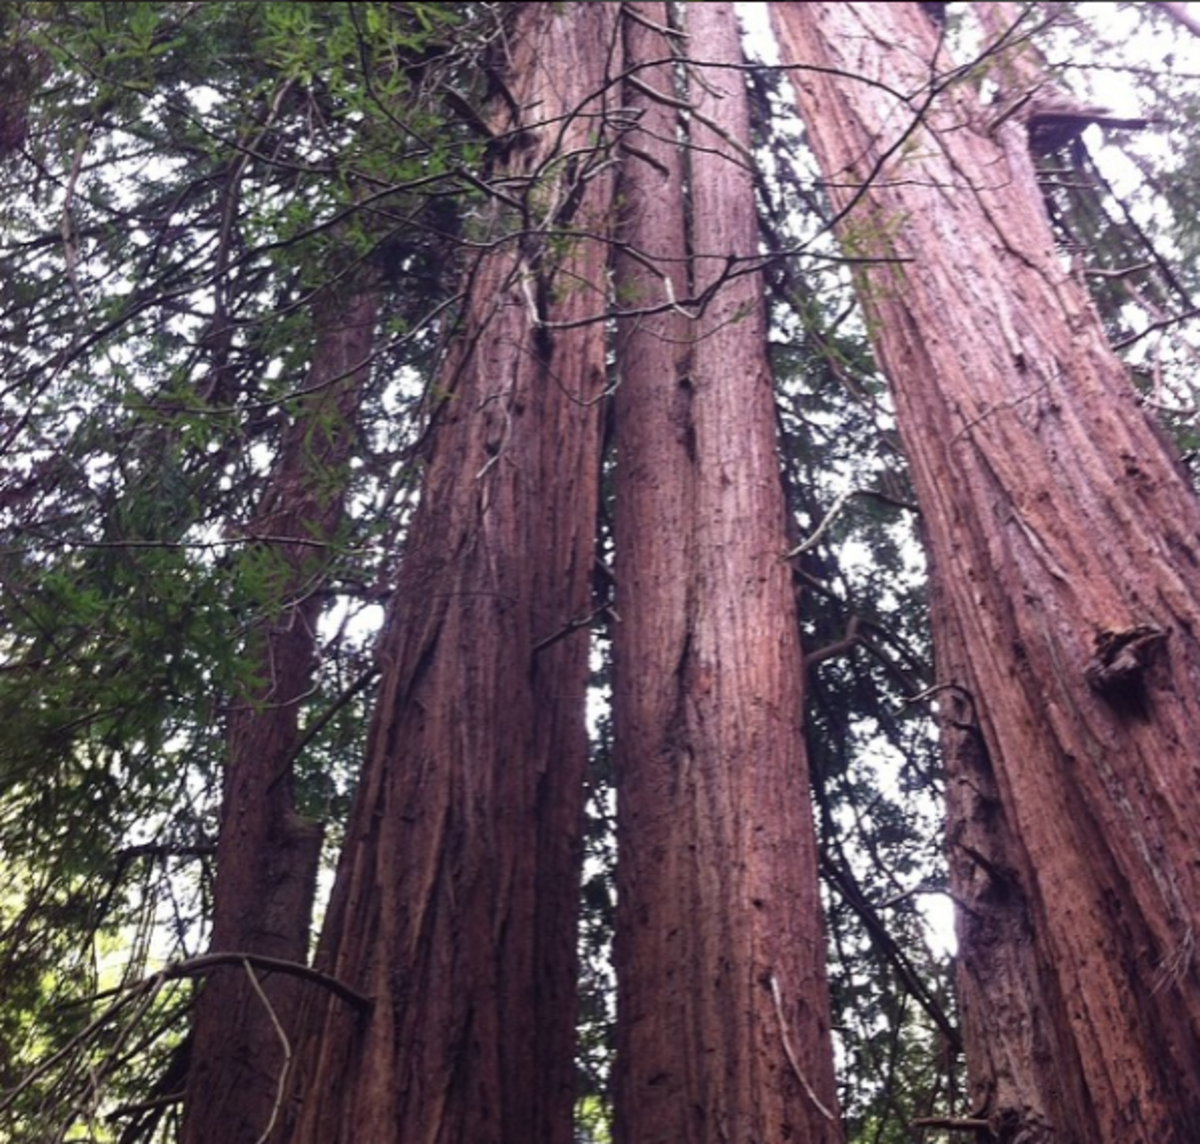 Wander through towering redwood trees at Muir Woods National Monument.